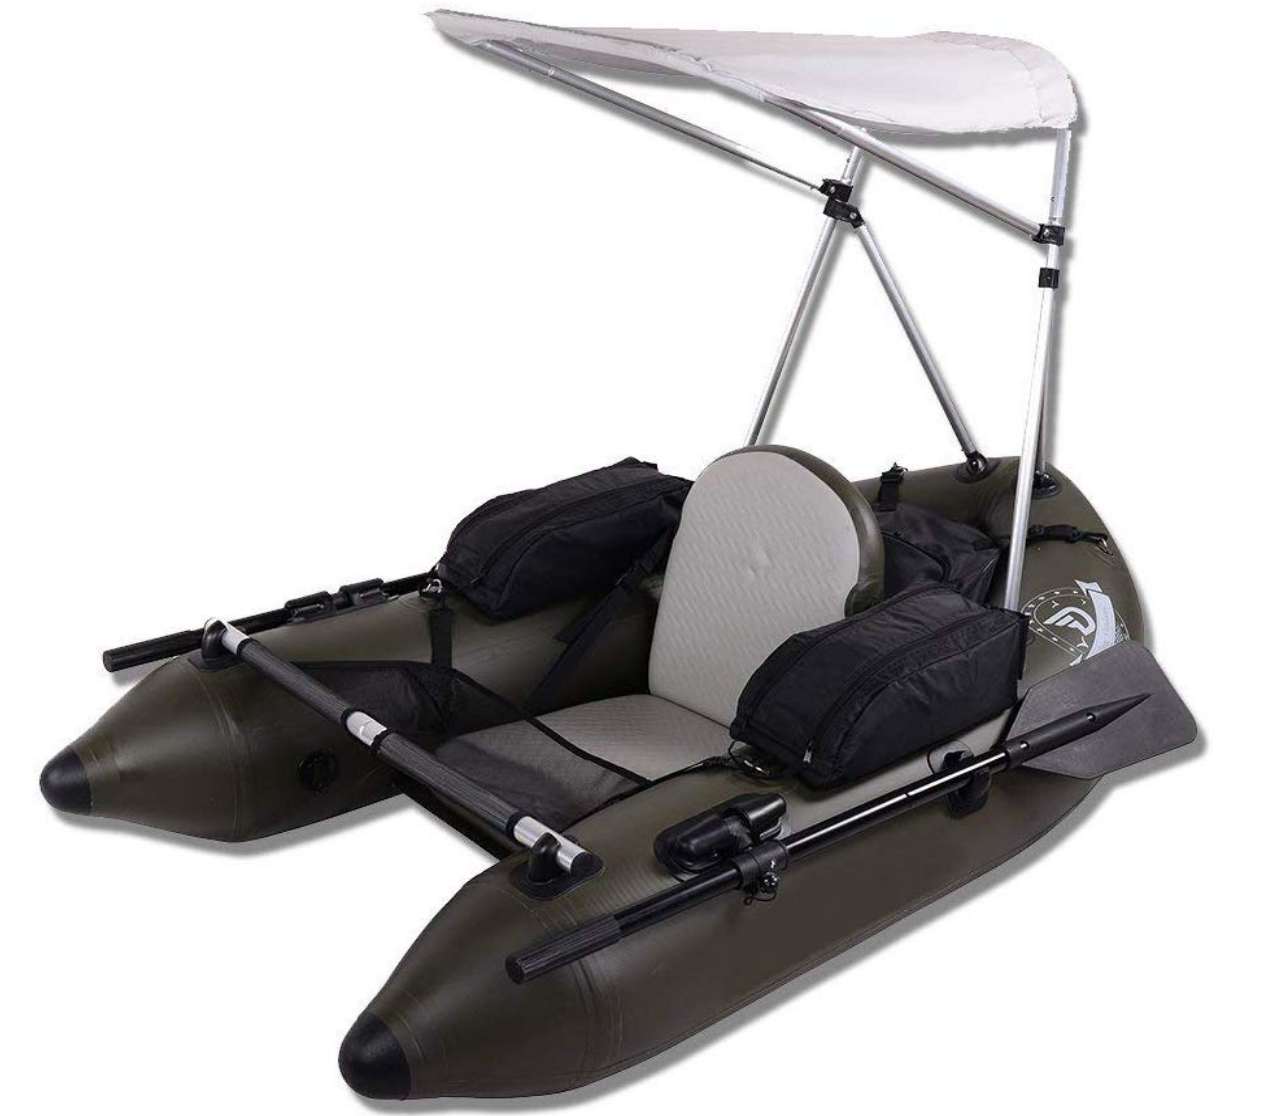 dama fishing raft with canopy